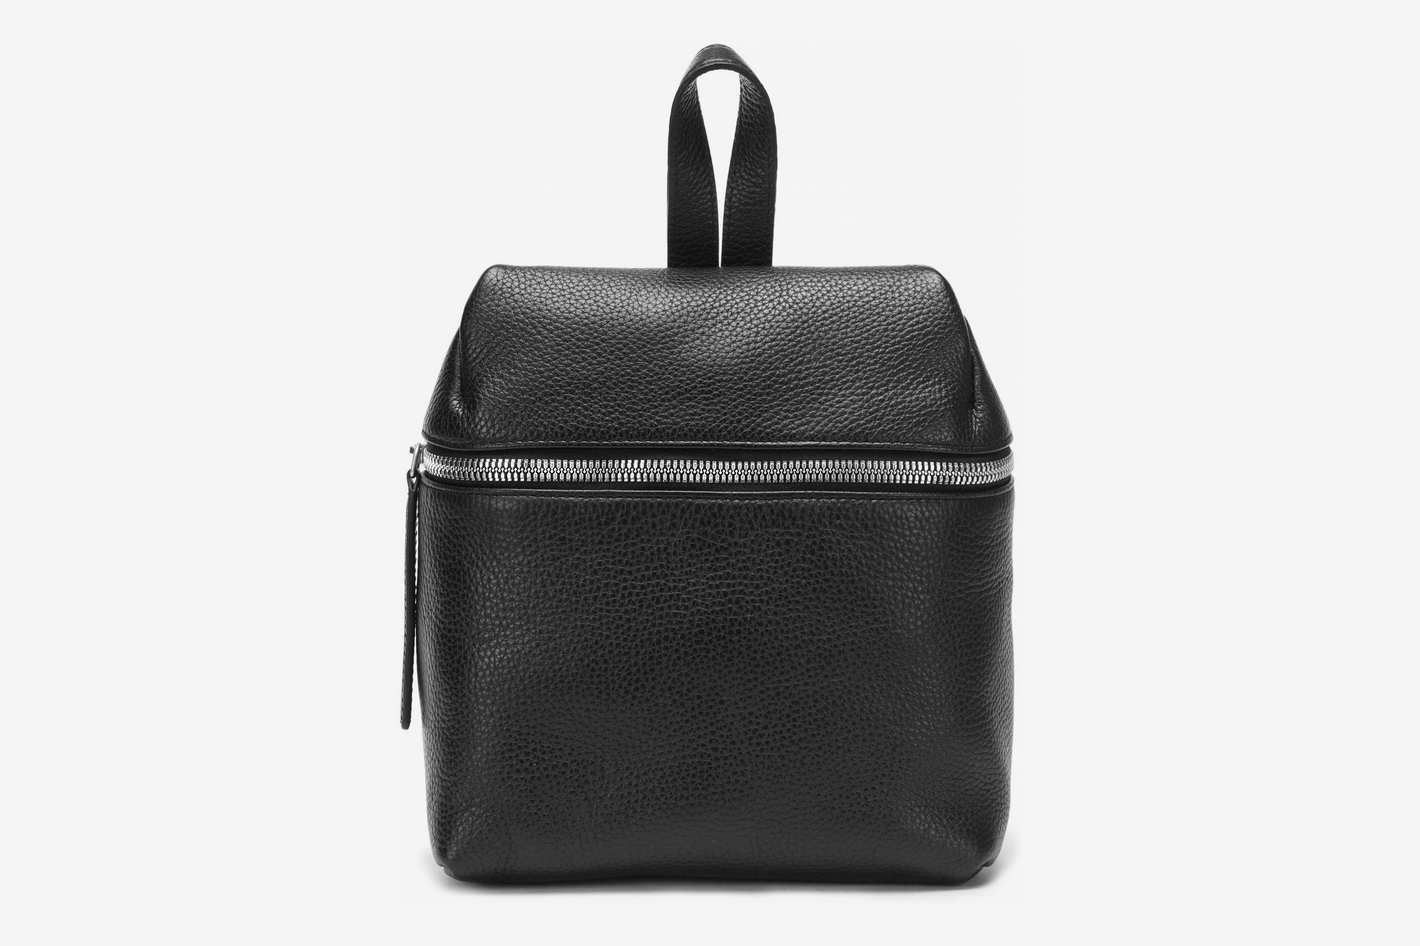 Kara Small Black Backpack